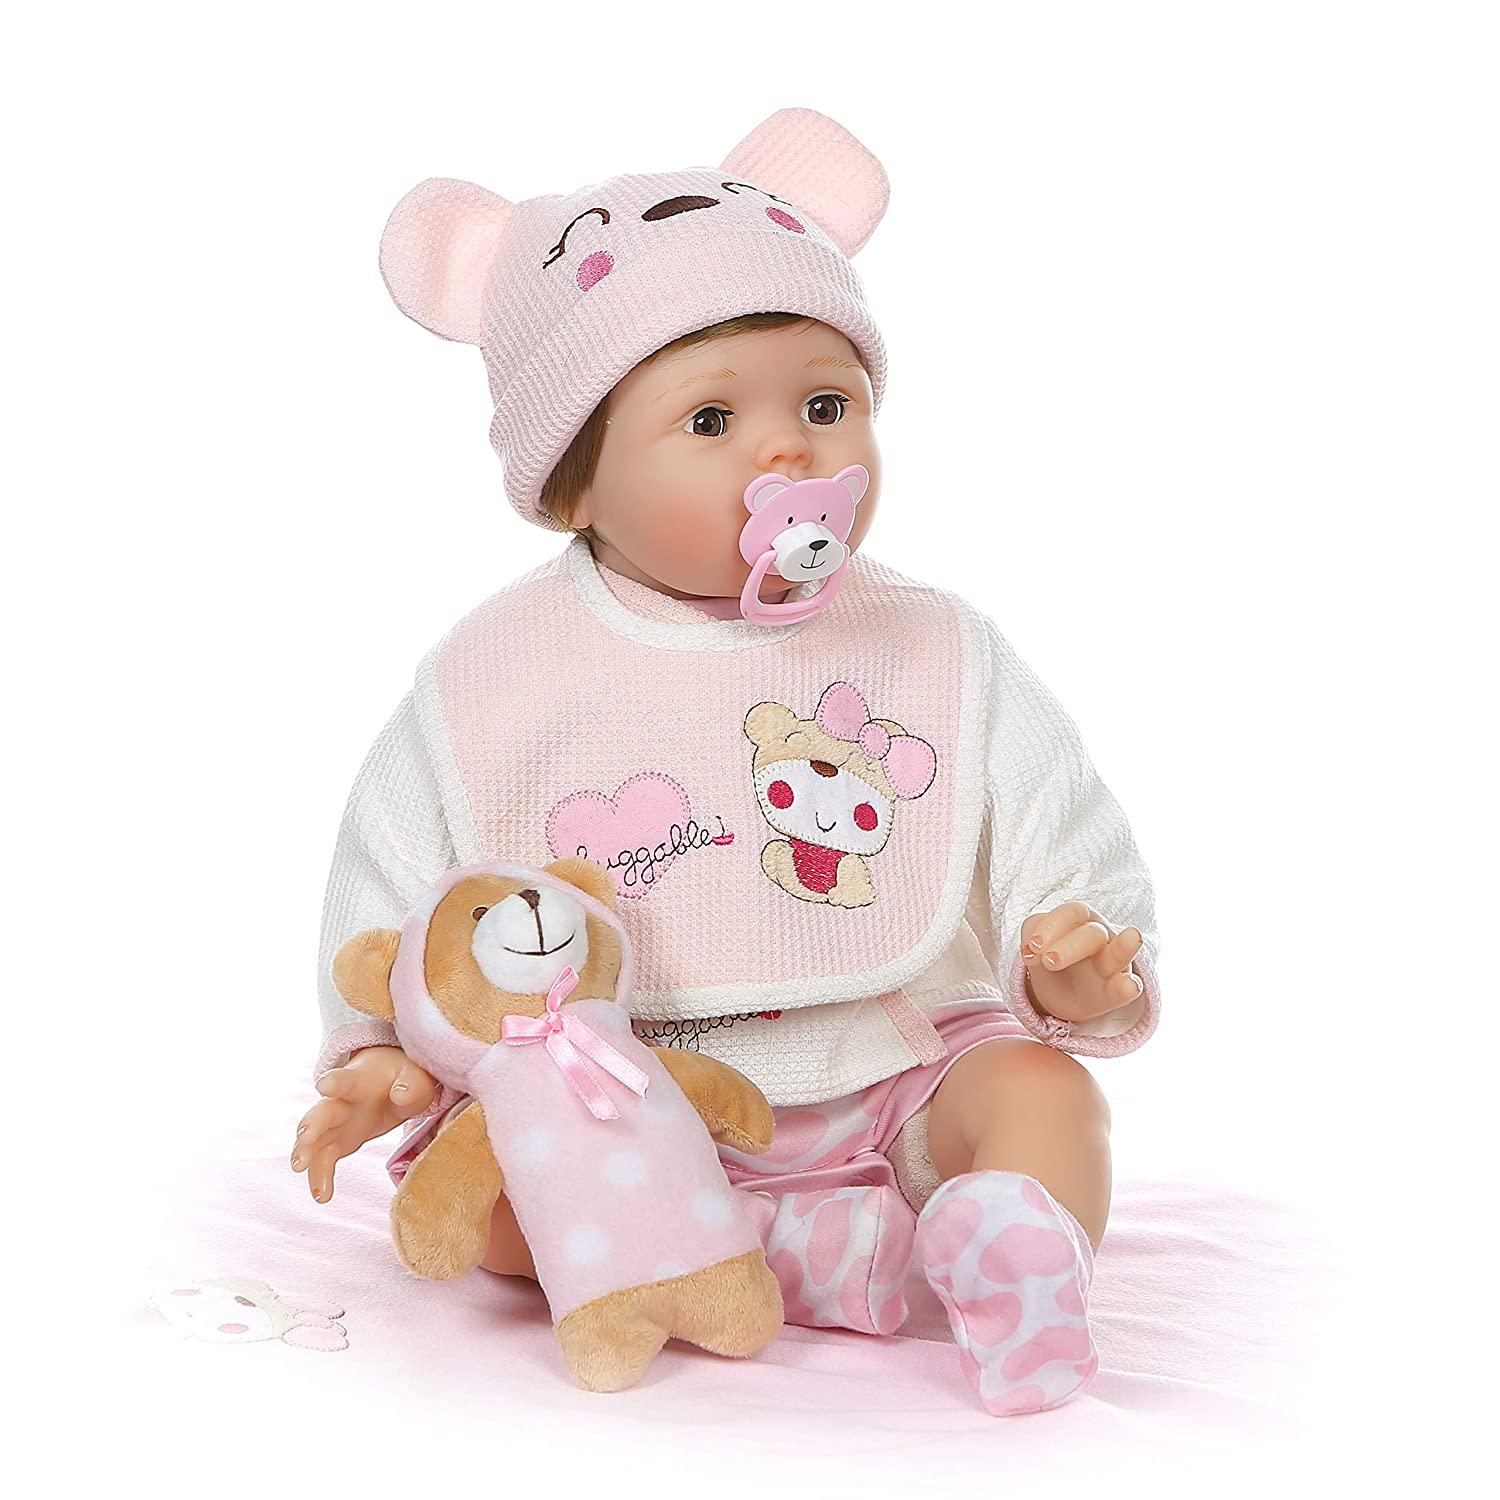 Silicone Lifelike Toy Reborn Toddler Baby Doll Artificial Girl 22 Inch Vinyl T2